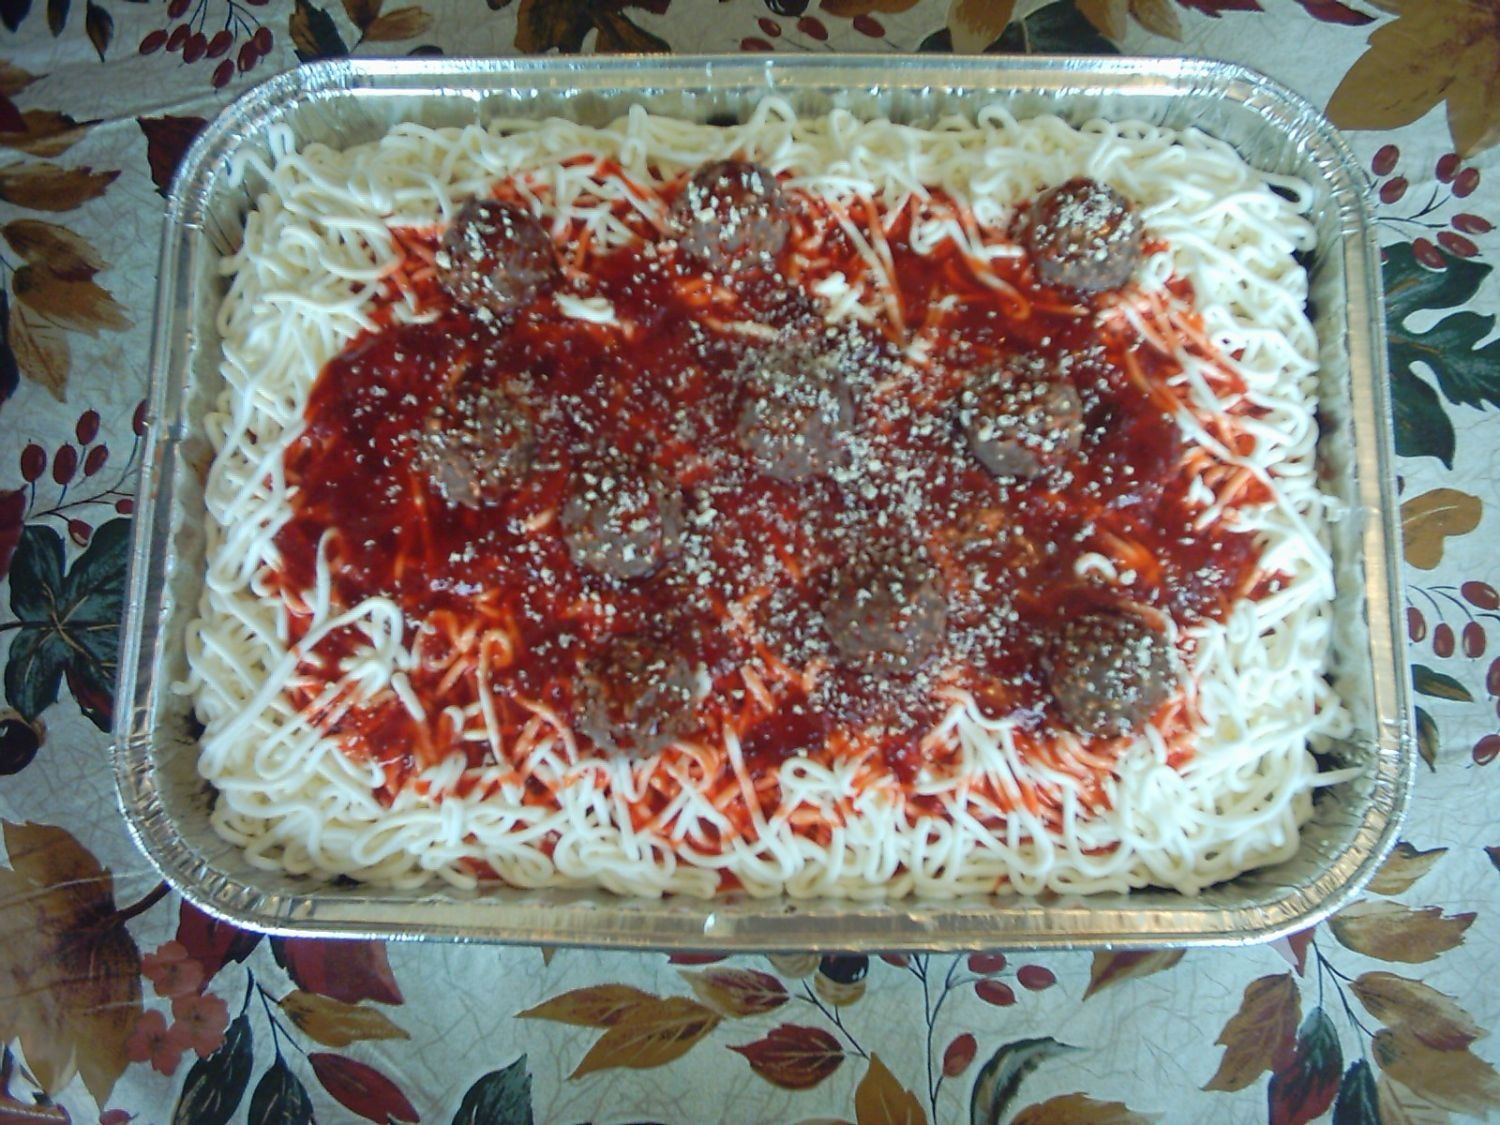 Spaghetti Cake  Yet another spaghetti cake. Thought this would be a good cake to try for a newbie. Buttercream noodles with strawberry topping as the sauce...